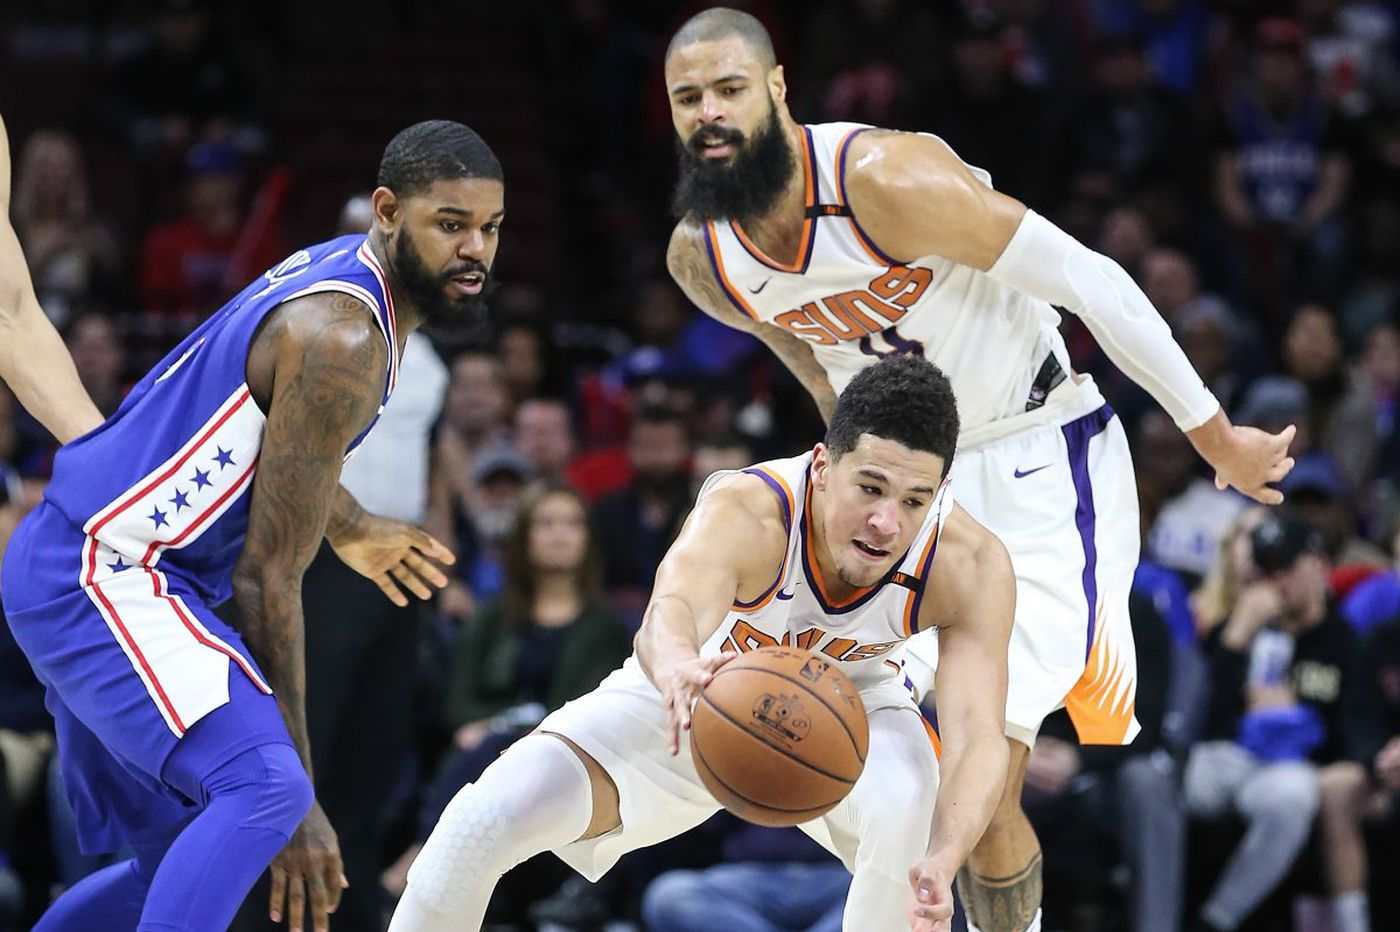 Devin Booker's 46 points carry Suns past Sixers